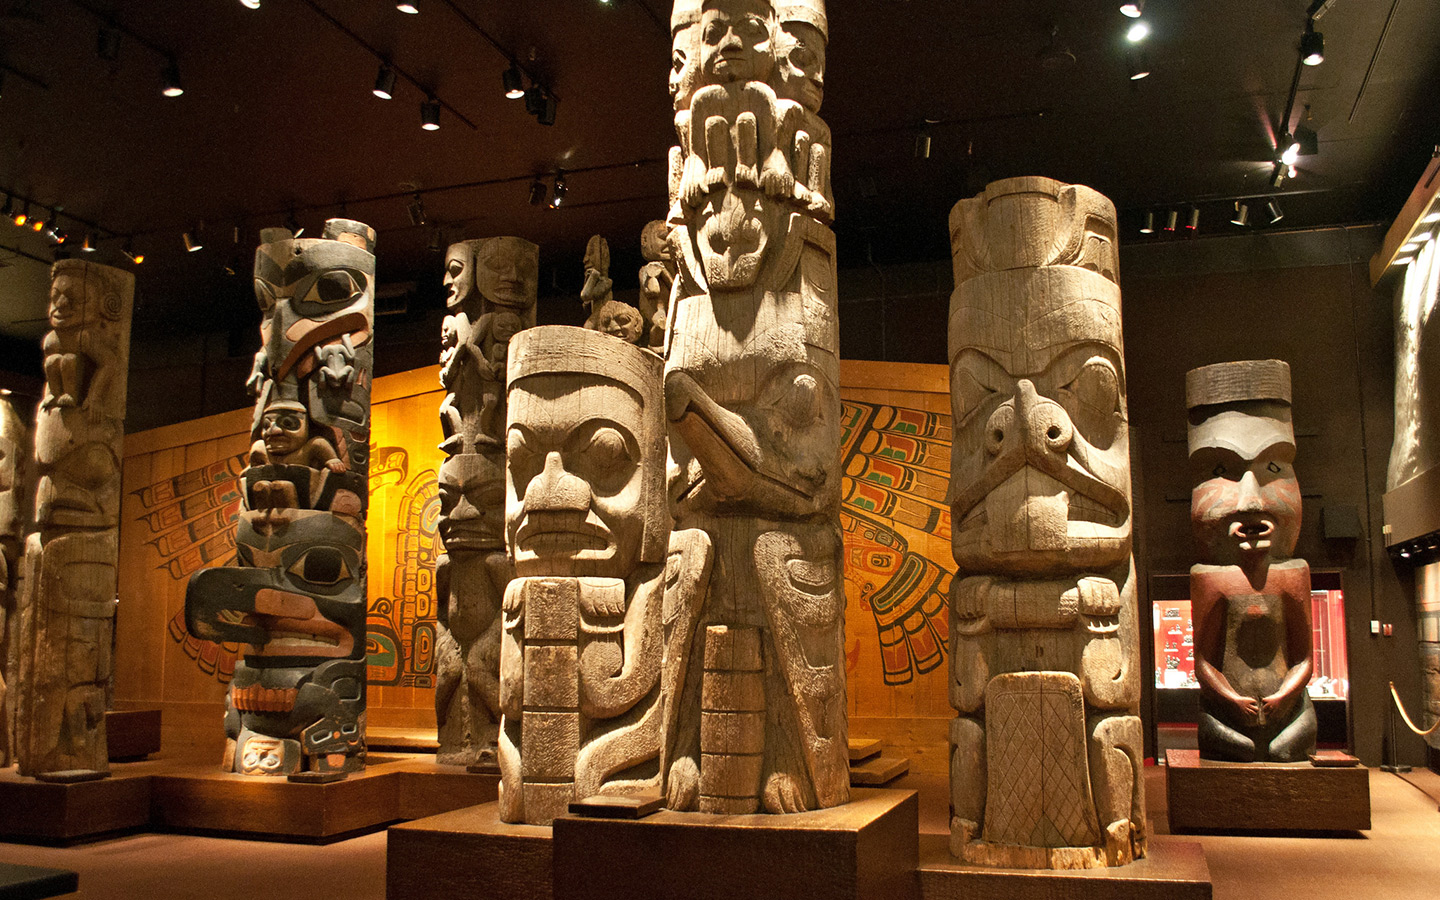 Royal BC Museum in Victoria, British Columbia, Canada